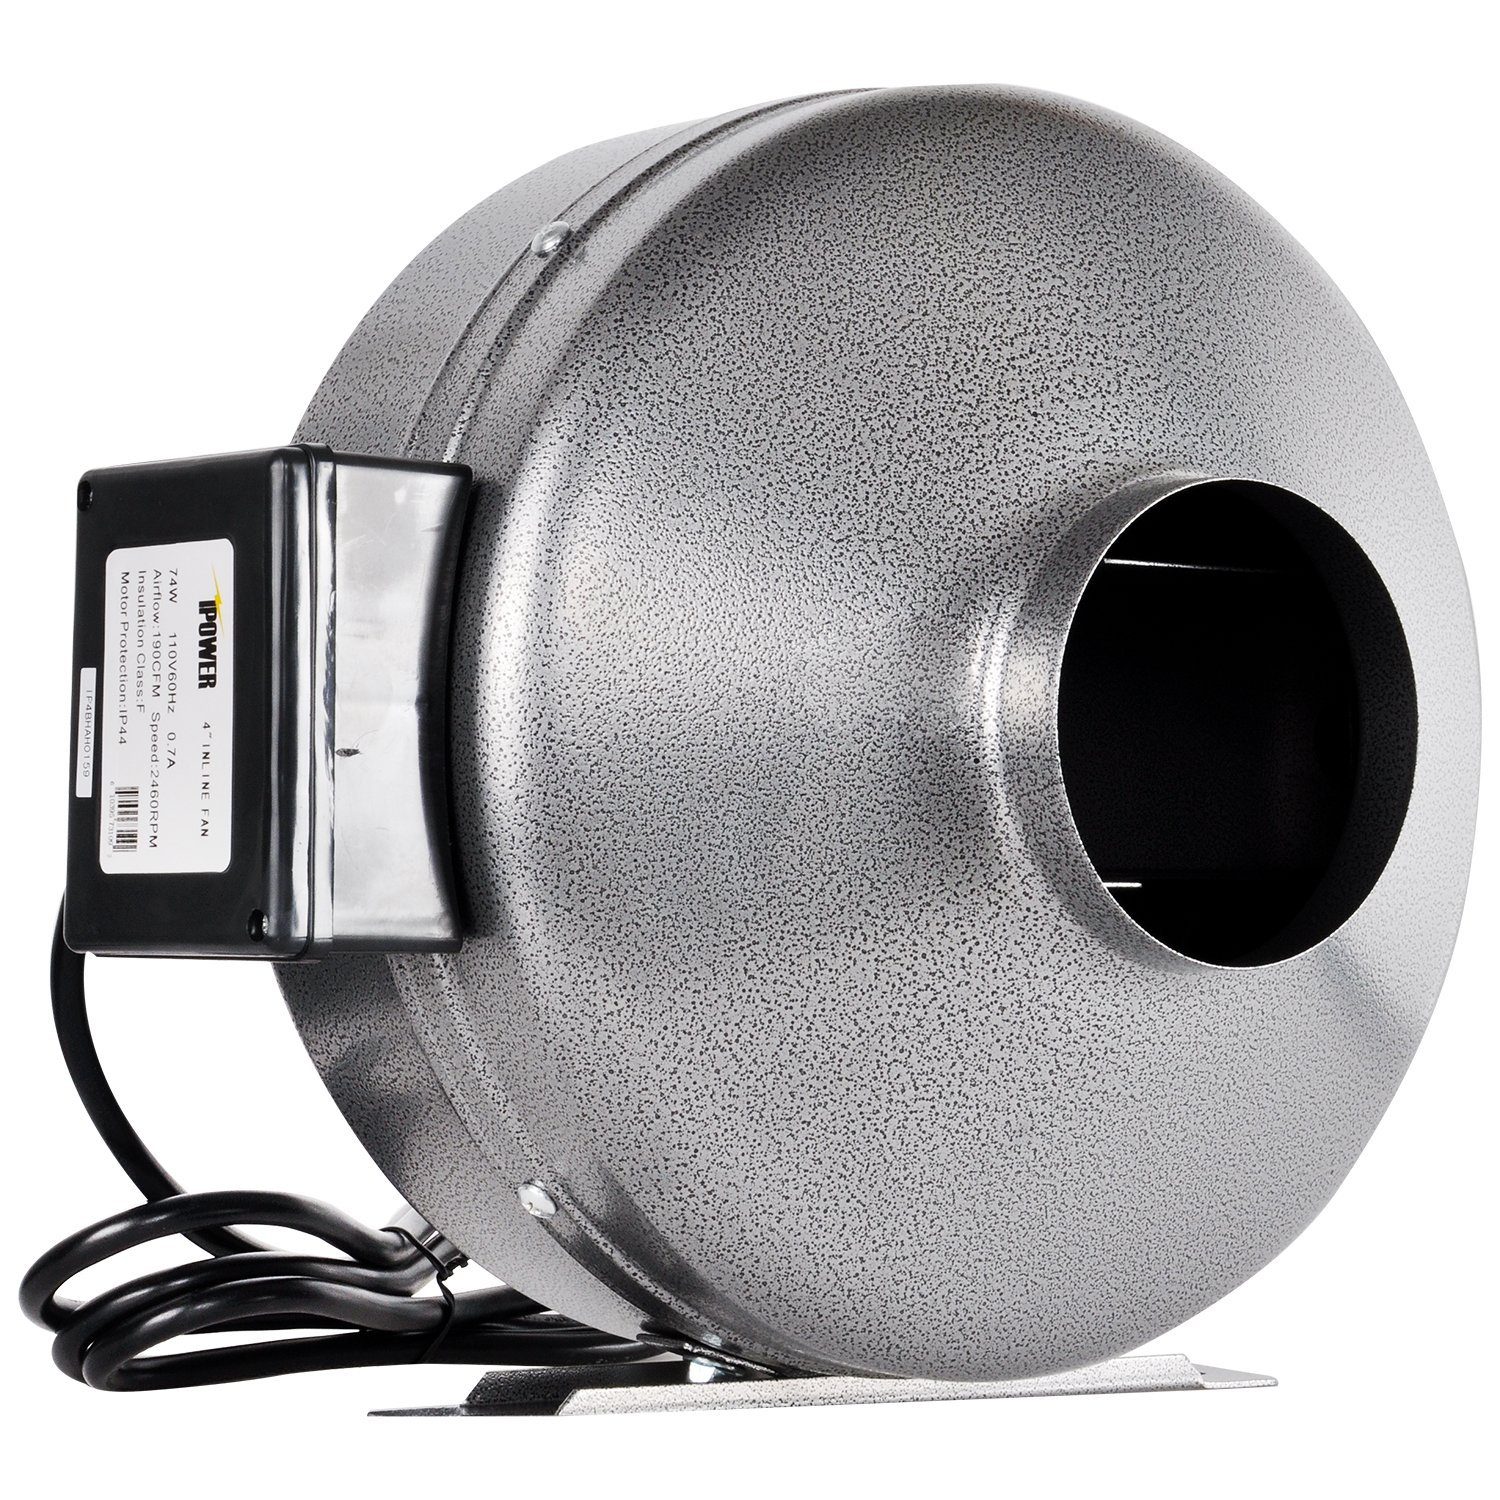 ipower 8 inch 750 cfm inline duct ventilation fan hvac exhaust blower for grow tent grounded power cord 8 grey walmart com